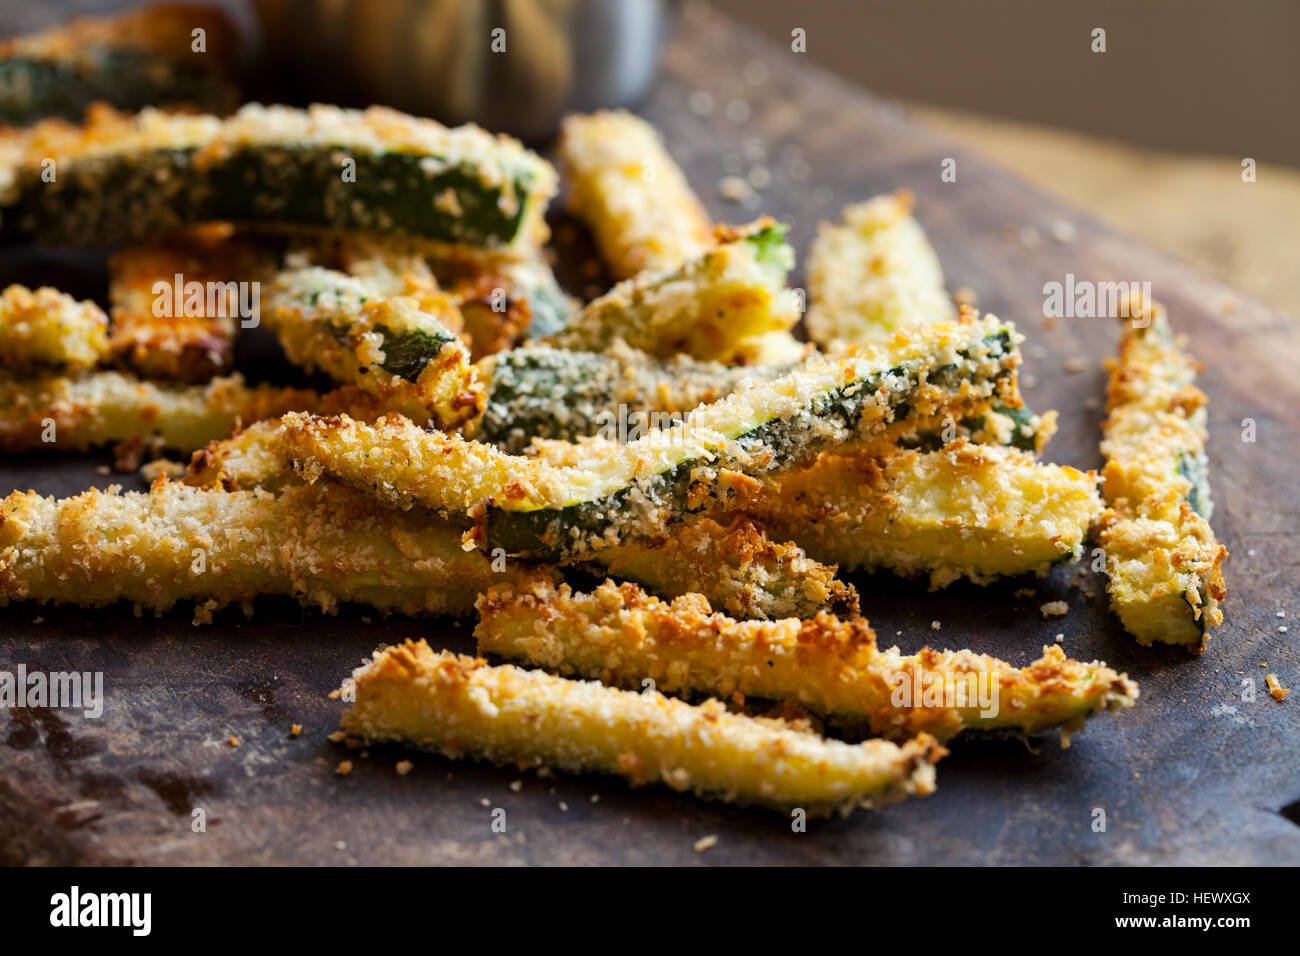 Zucchini fires - Stock Image